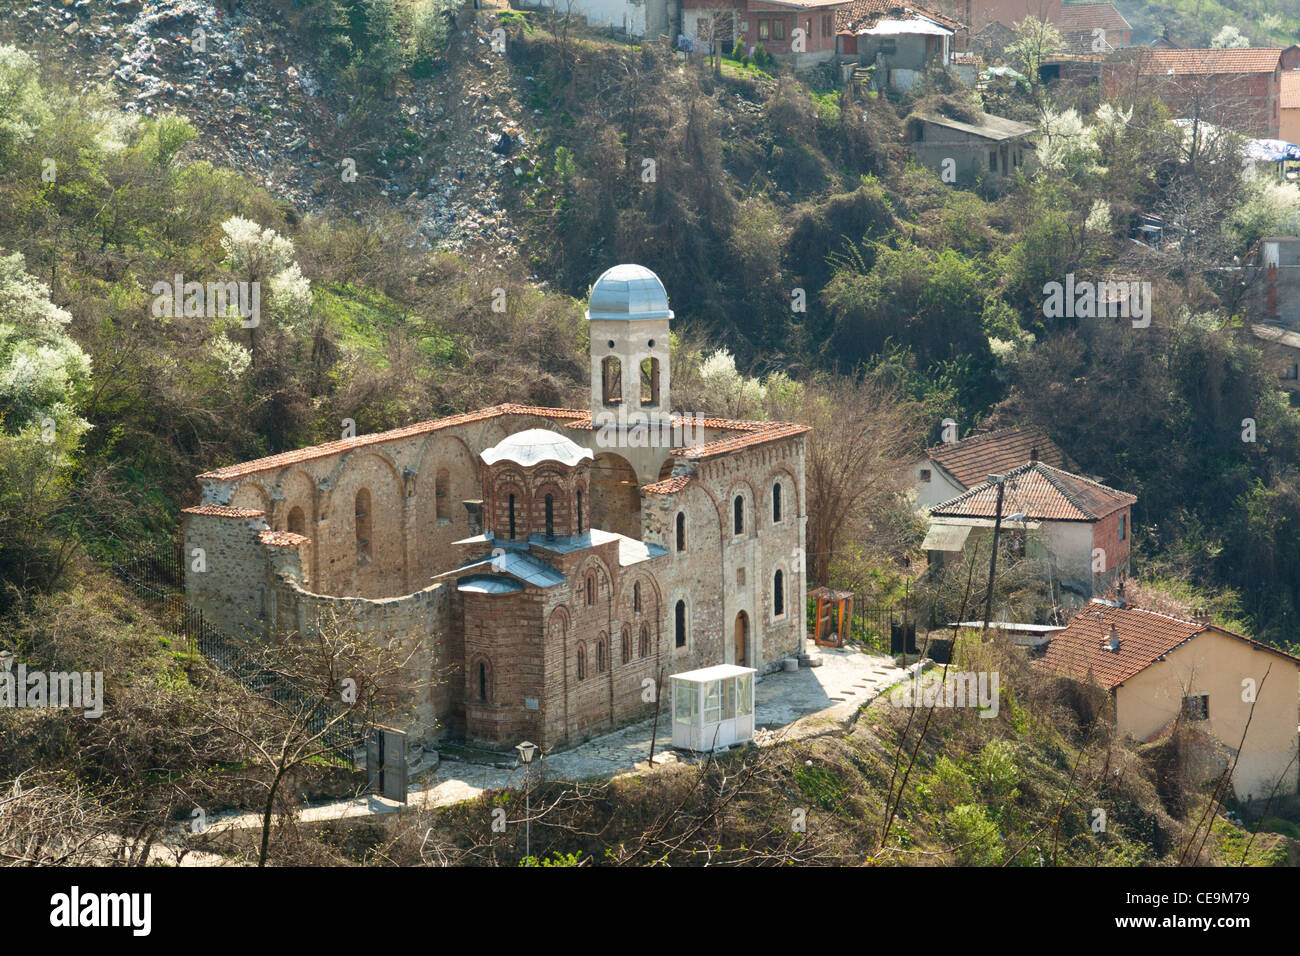 An old empty church in the city of Prizren, Kosovo - Stock Image